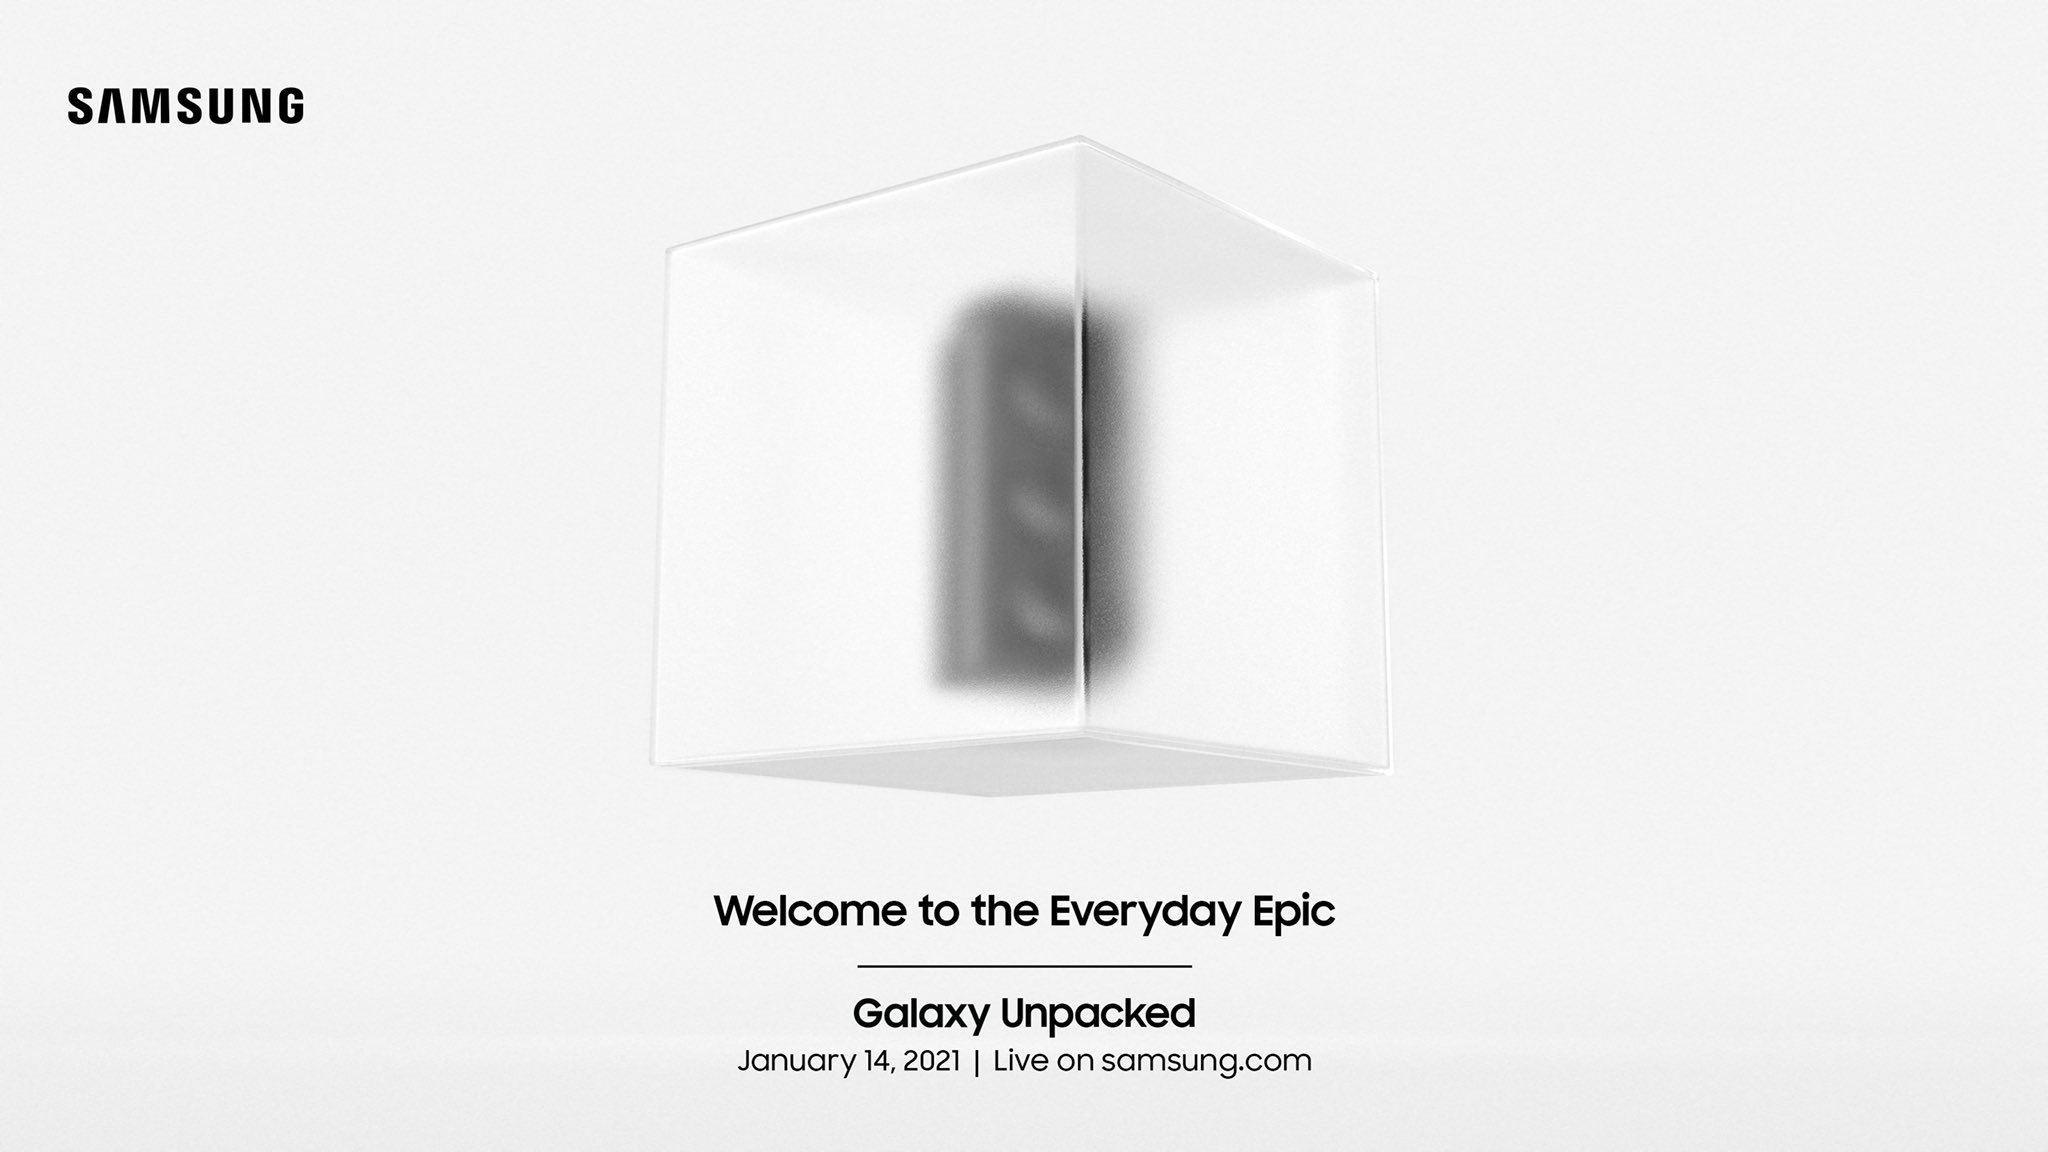 Samsung Galaxy S21 launch event